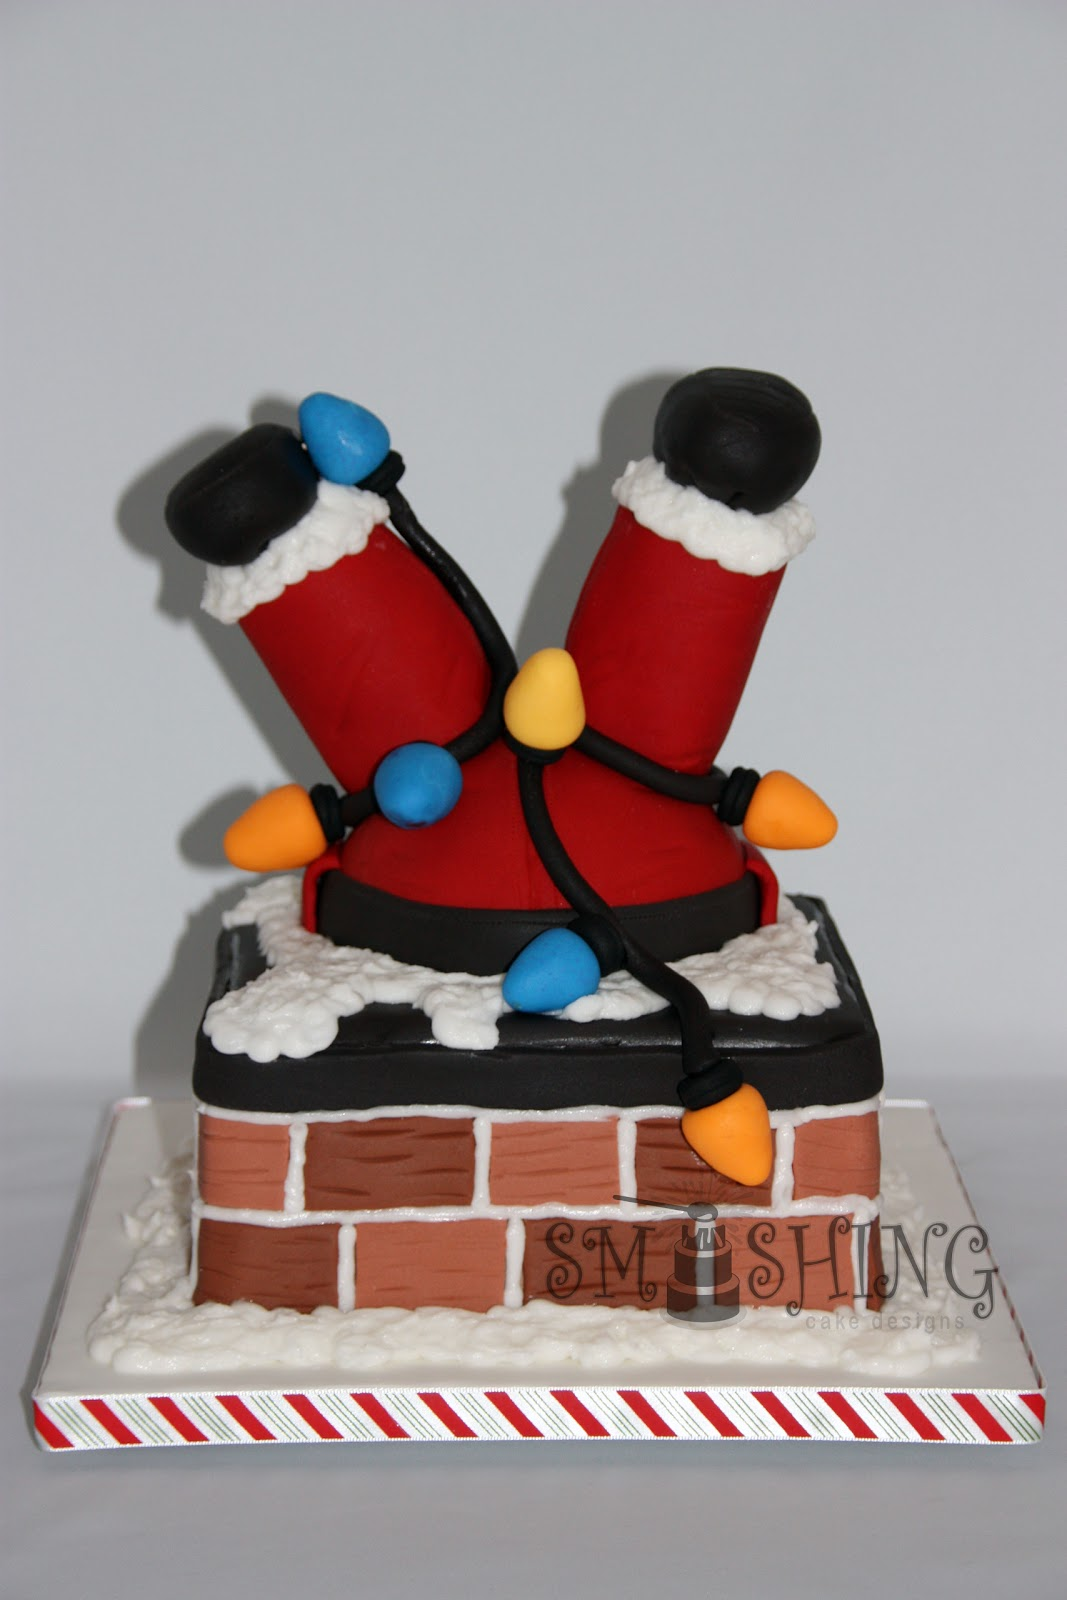 Smashing Cake Designs December 2010: santa stuck in chimney cake